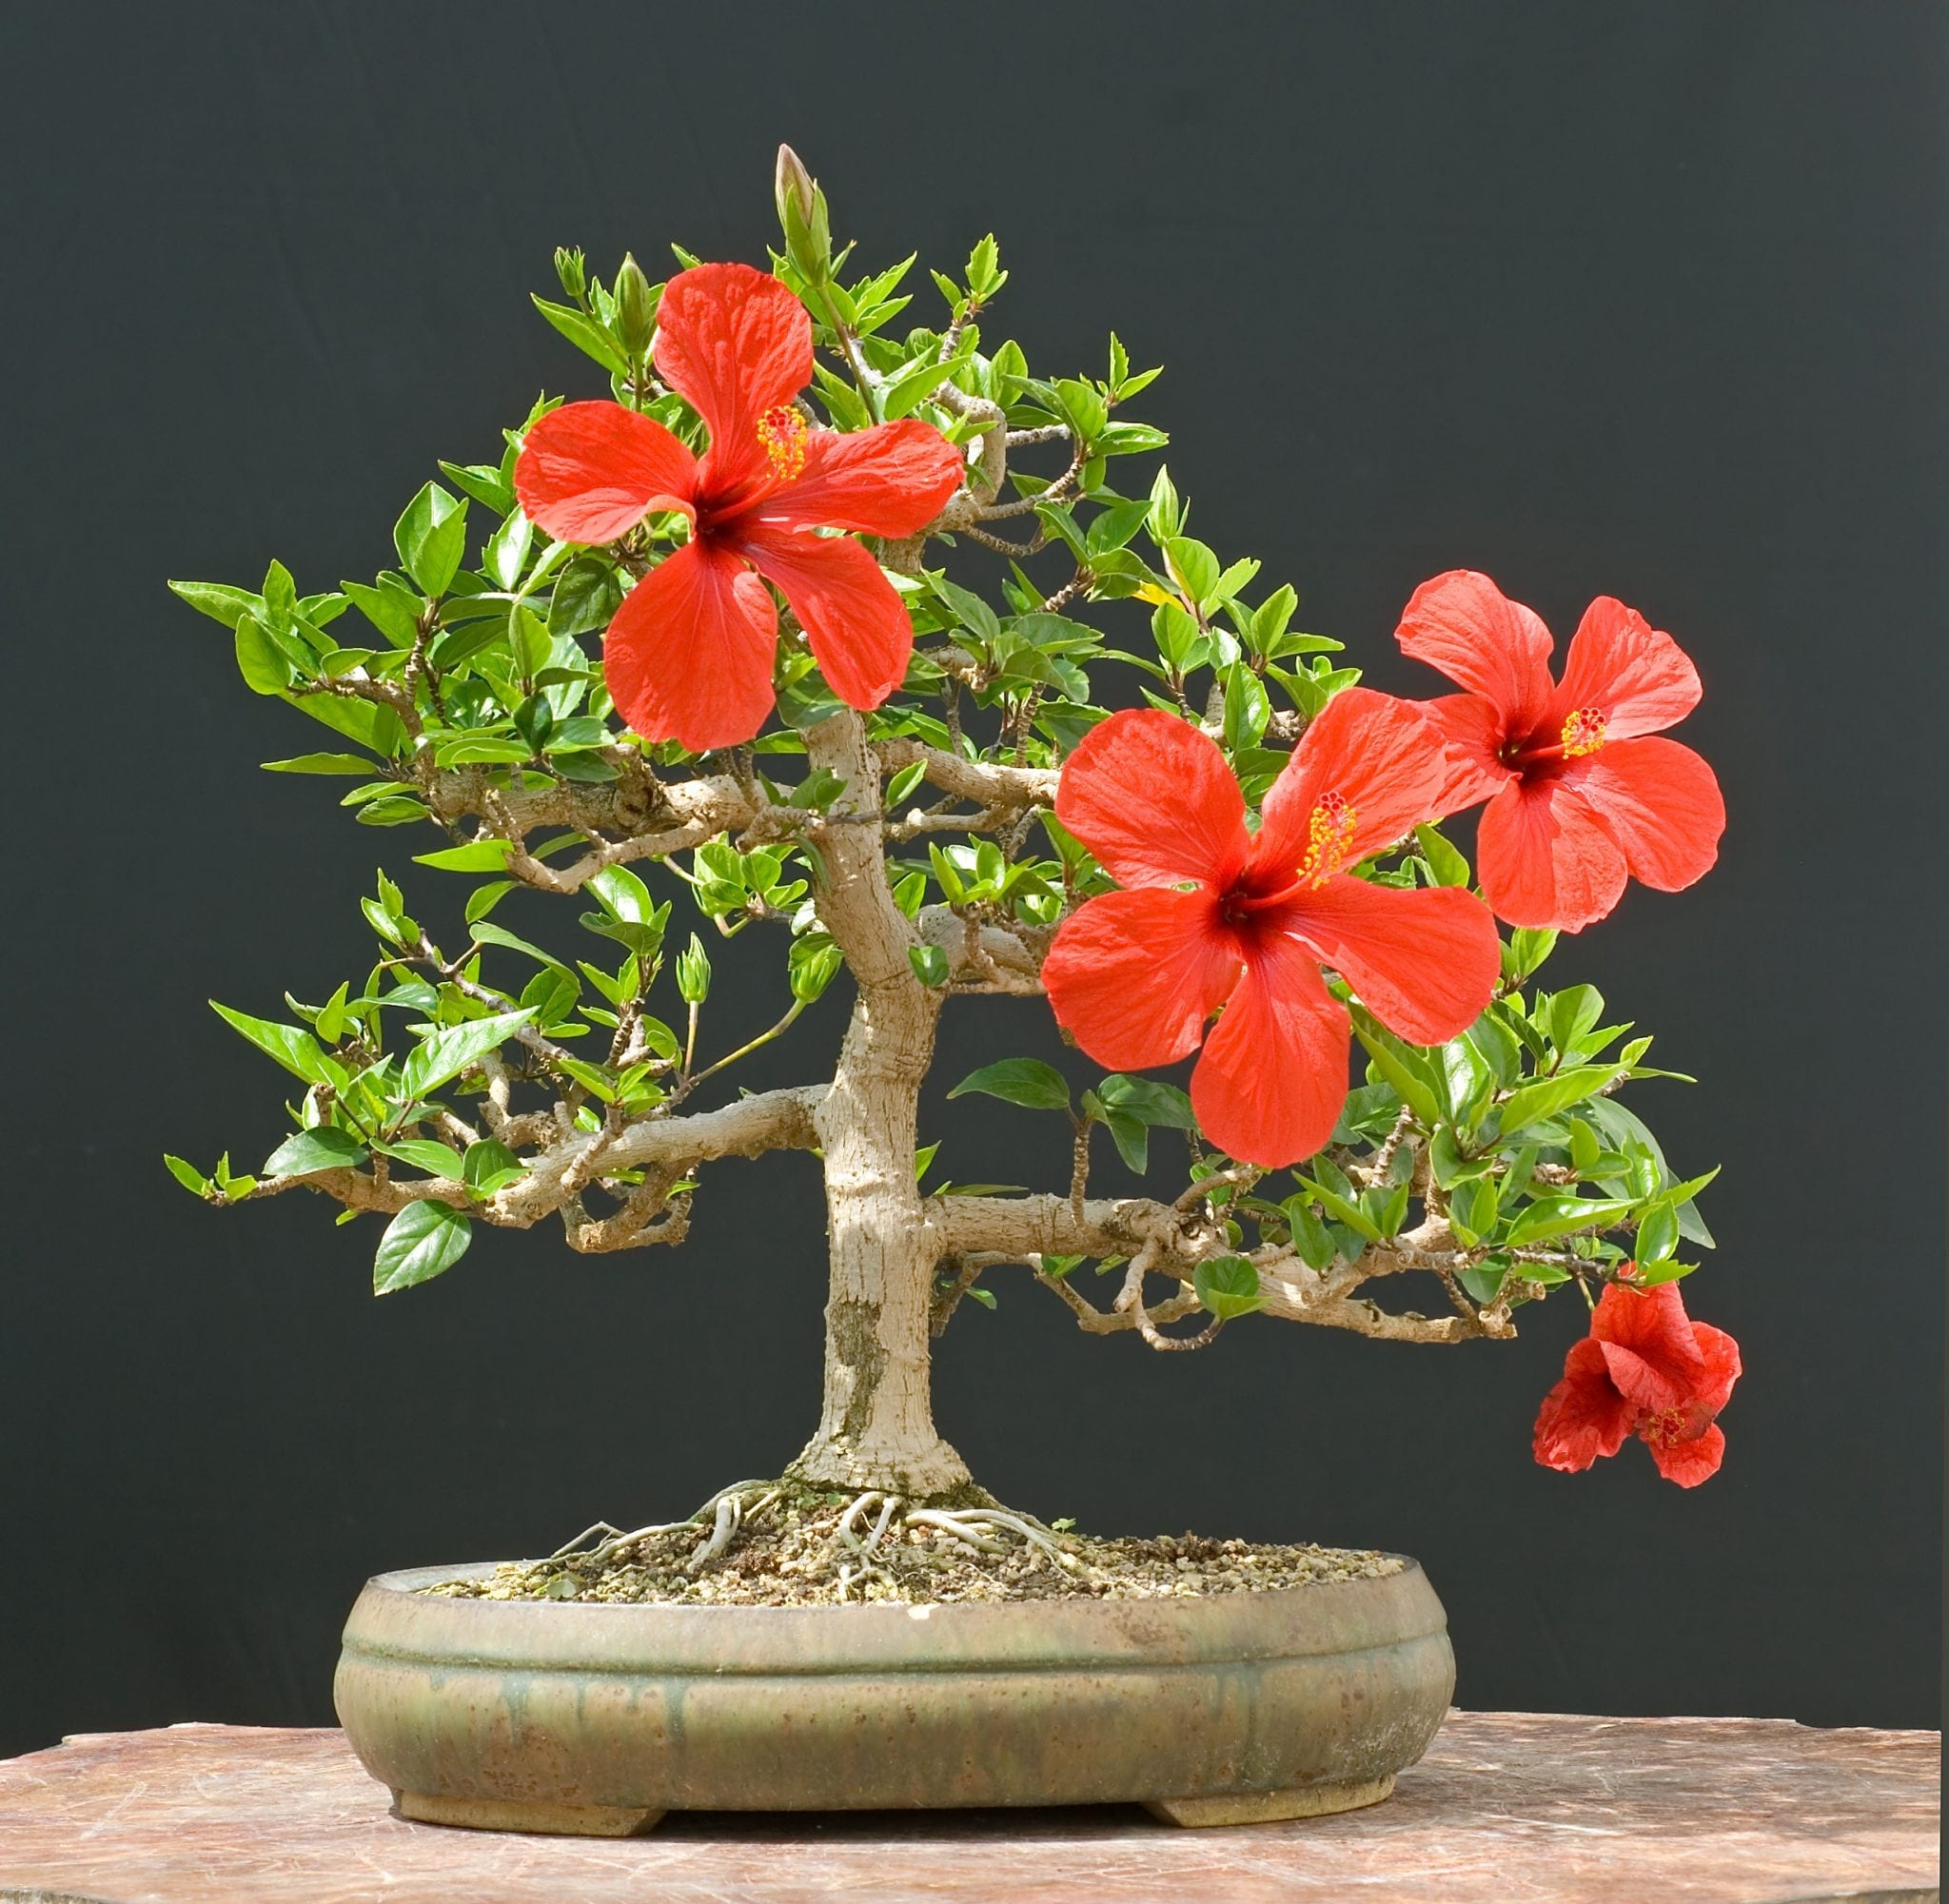 Hibiscus Bonsai Tree Care Guide Hibiscus Sinensis Bonsai Tree